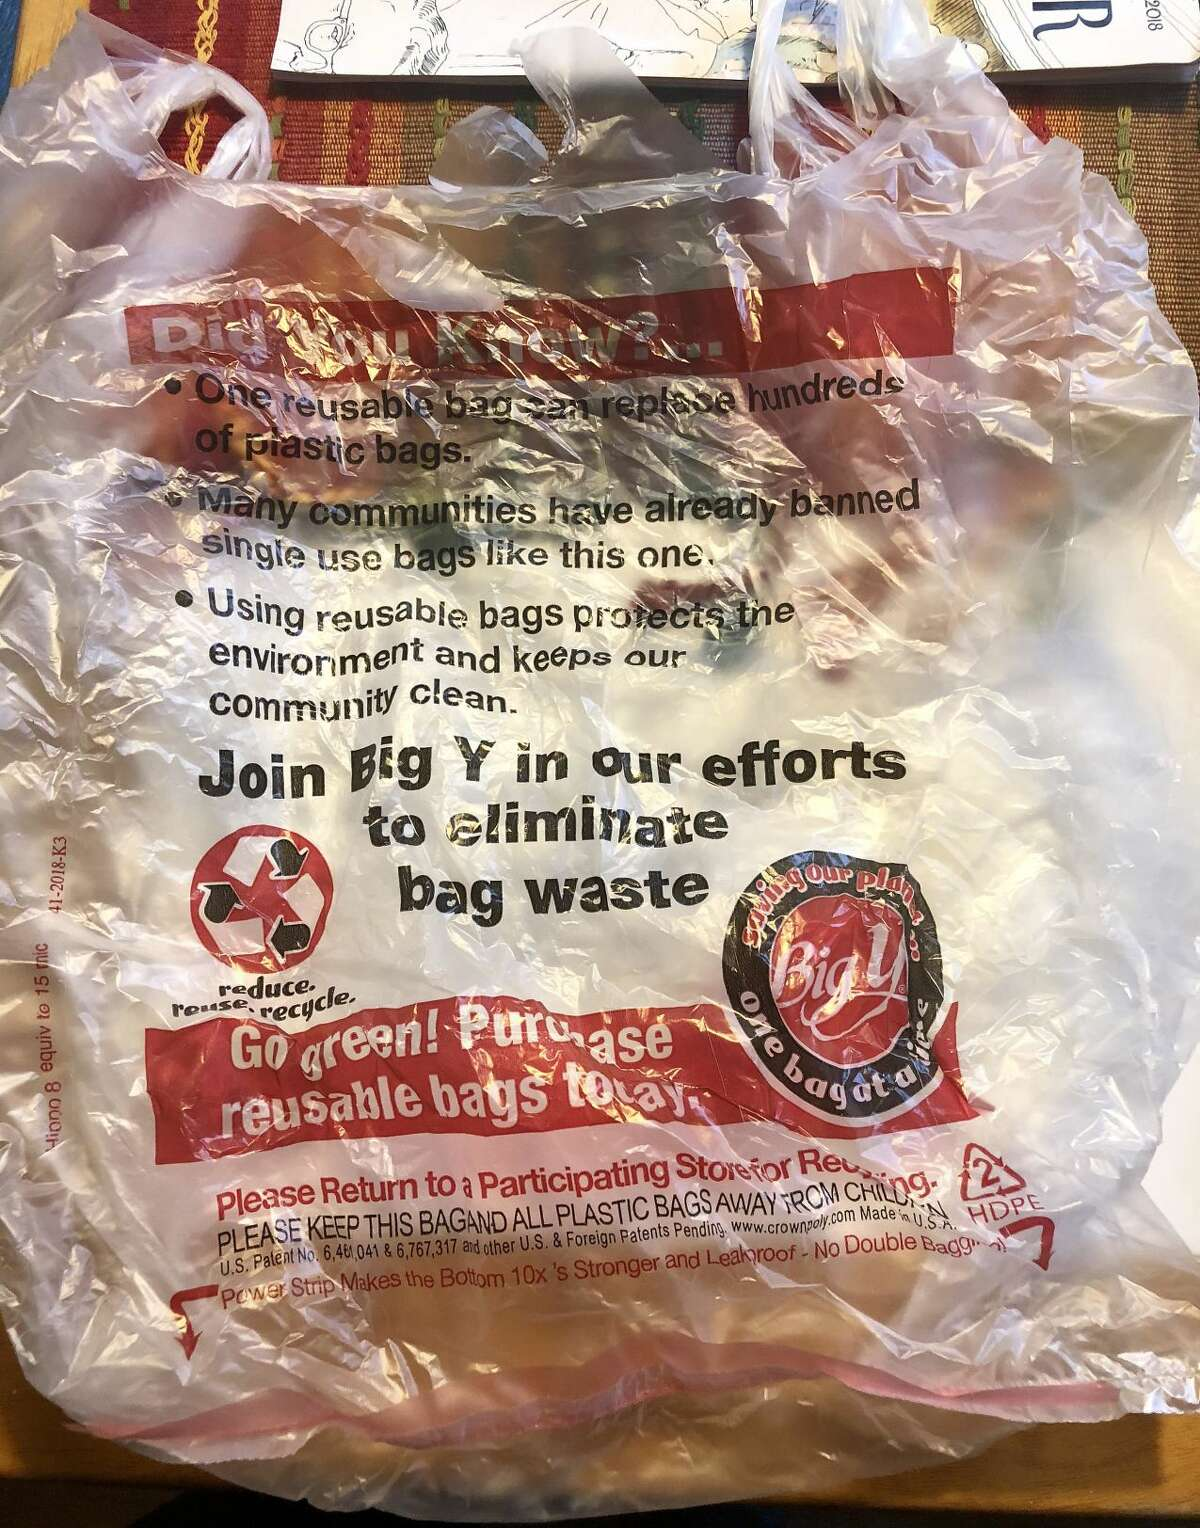 Voluntary compliance measures taken by Big Y in Branford to encourage shoppers toward use of reusable bags that in part prompted BYO Branford's proposed ordinance